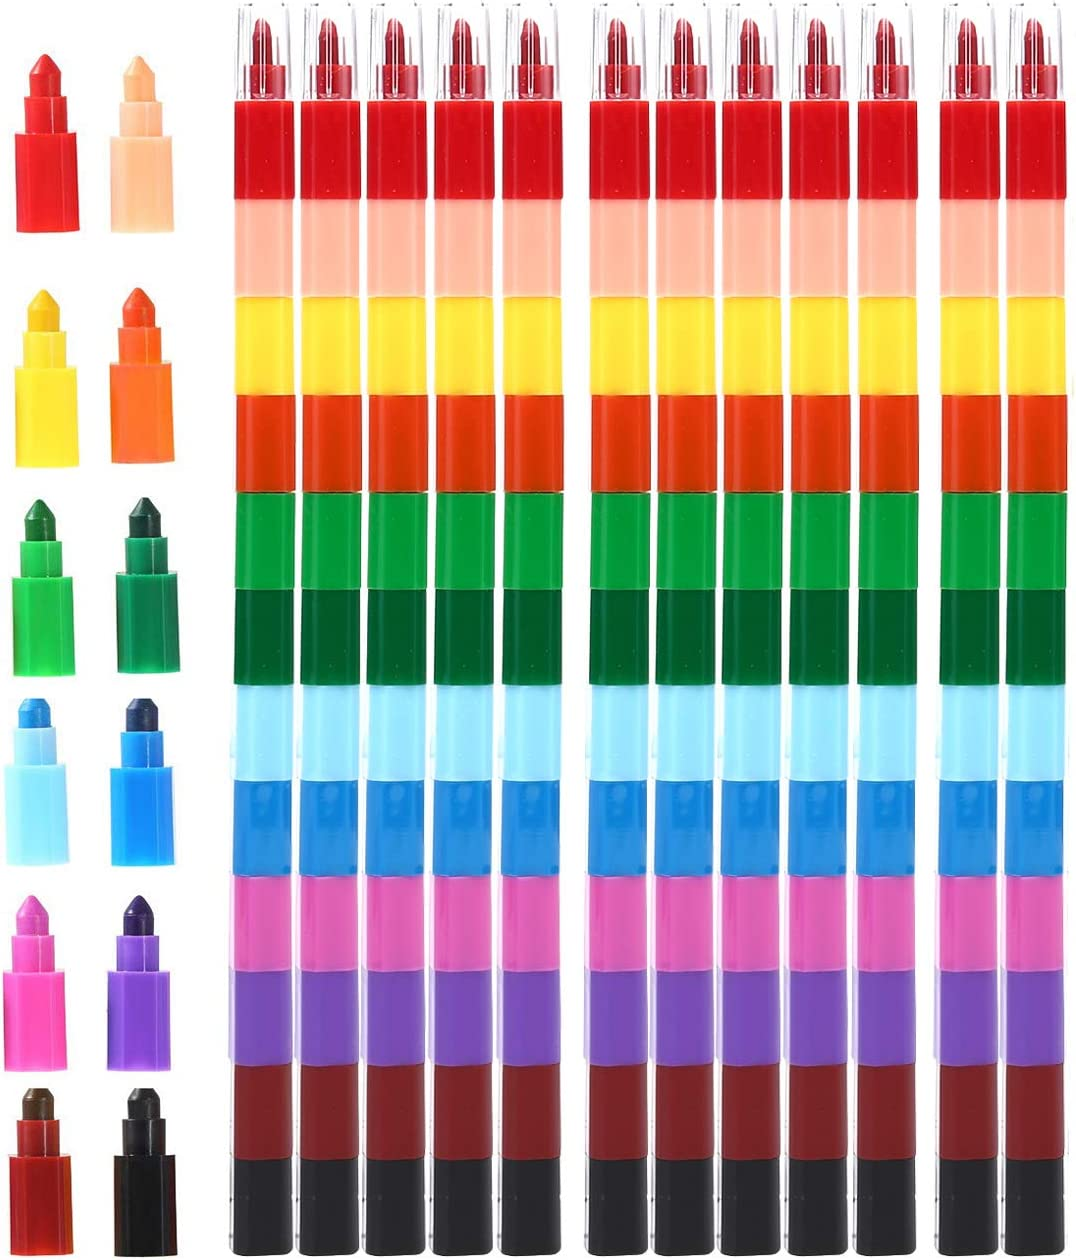 MeiMeiDa 12 Pieces Stacking Crayons for Kids Party Favors Colorful Stackable Buildable Crayon Set - Fun Rainbow Crayons for Art Paint Party, Goodie Bag Filler, Prizes